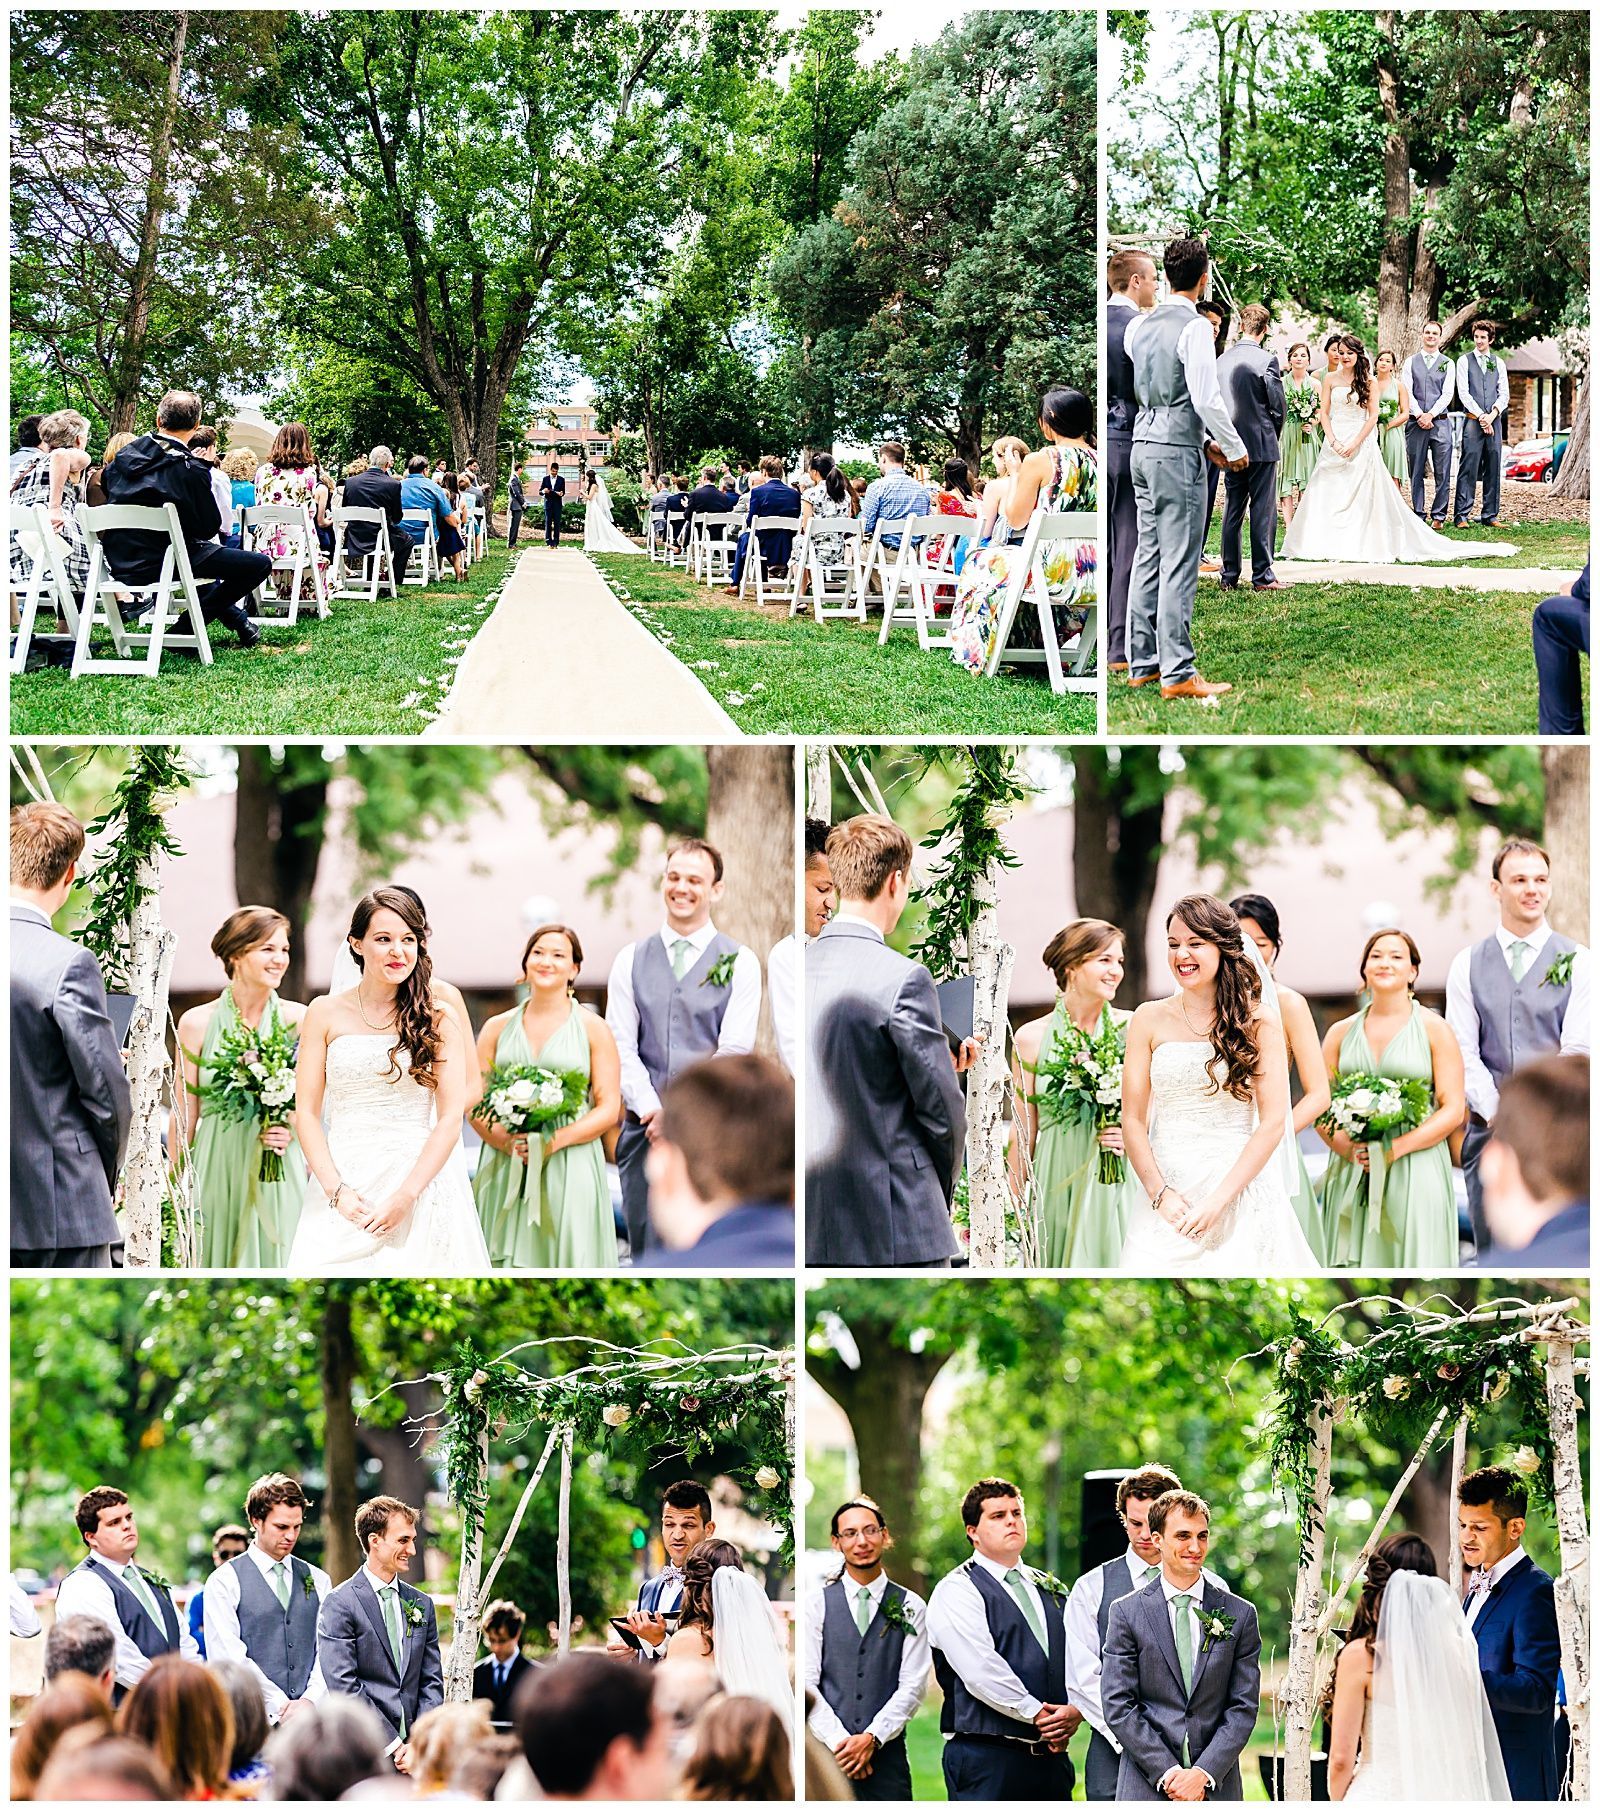 Boulder, CO Wedding With An Outdoor Ceremony And Reception